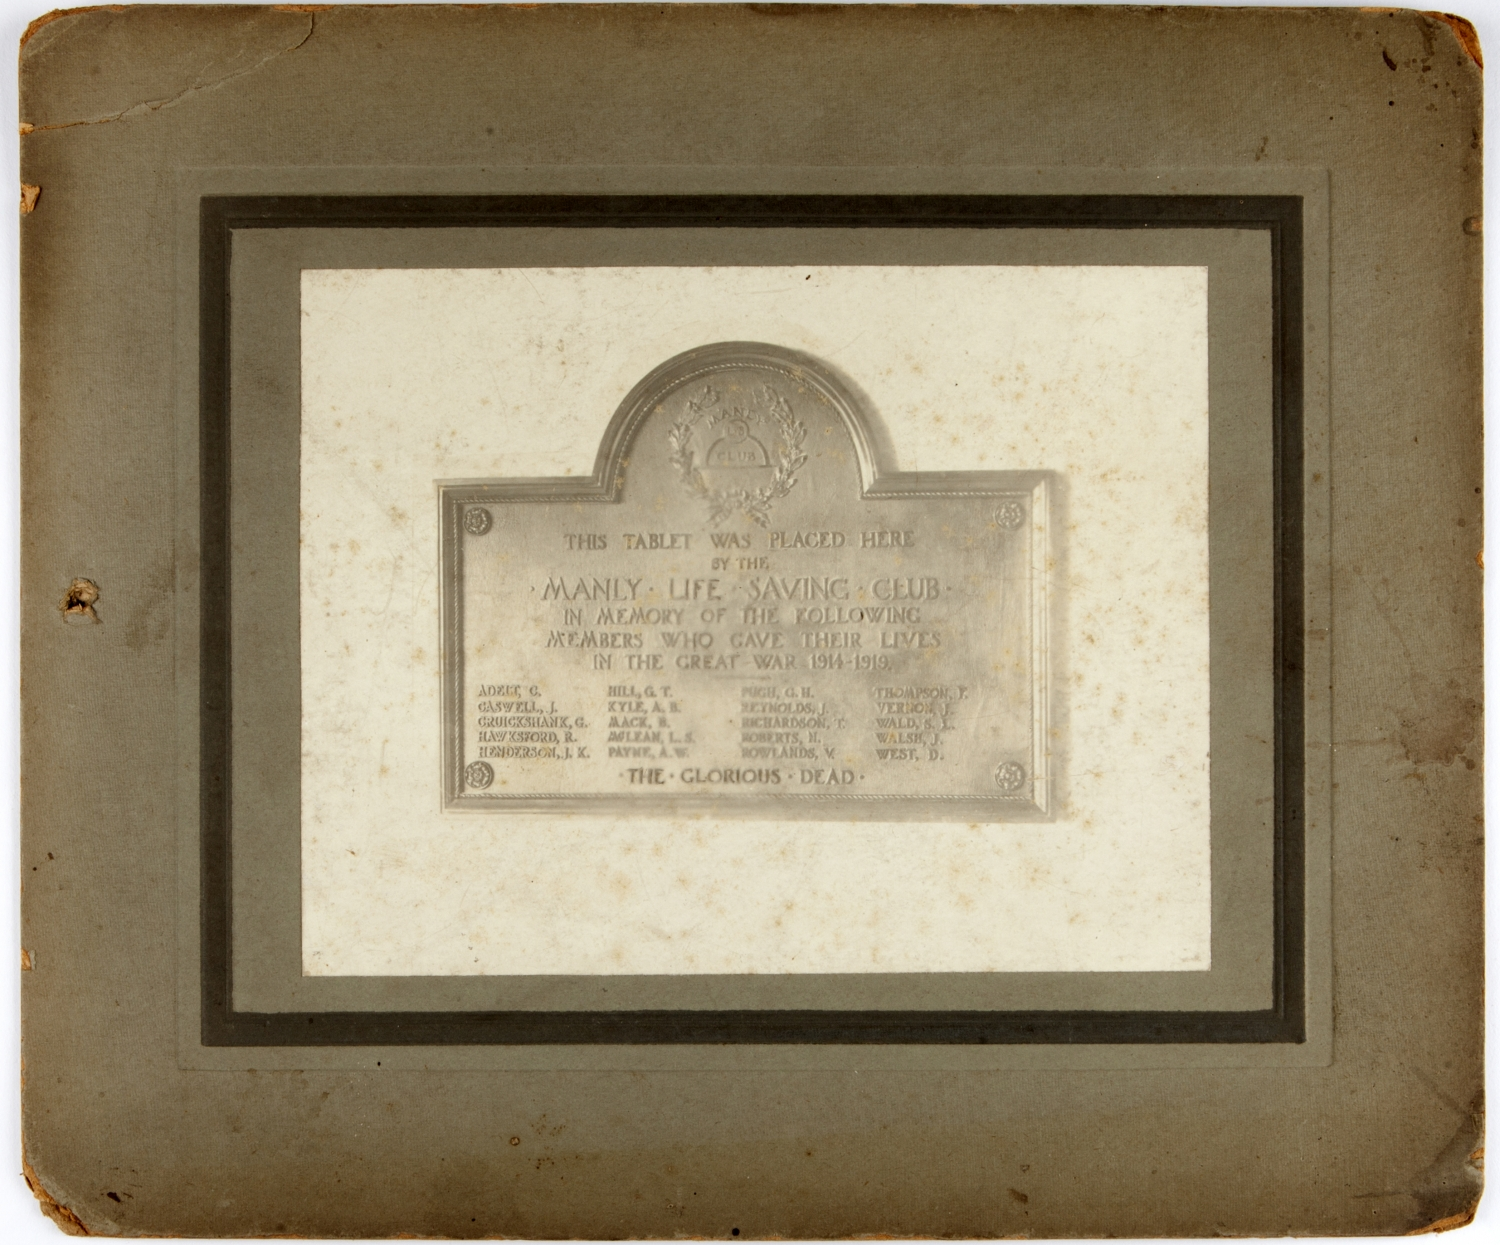 Photo in frame of memorial on wall.